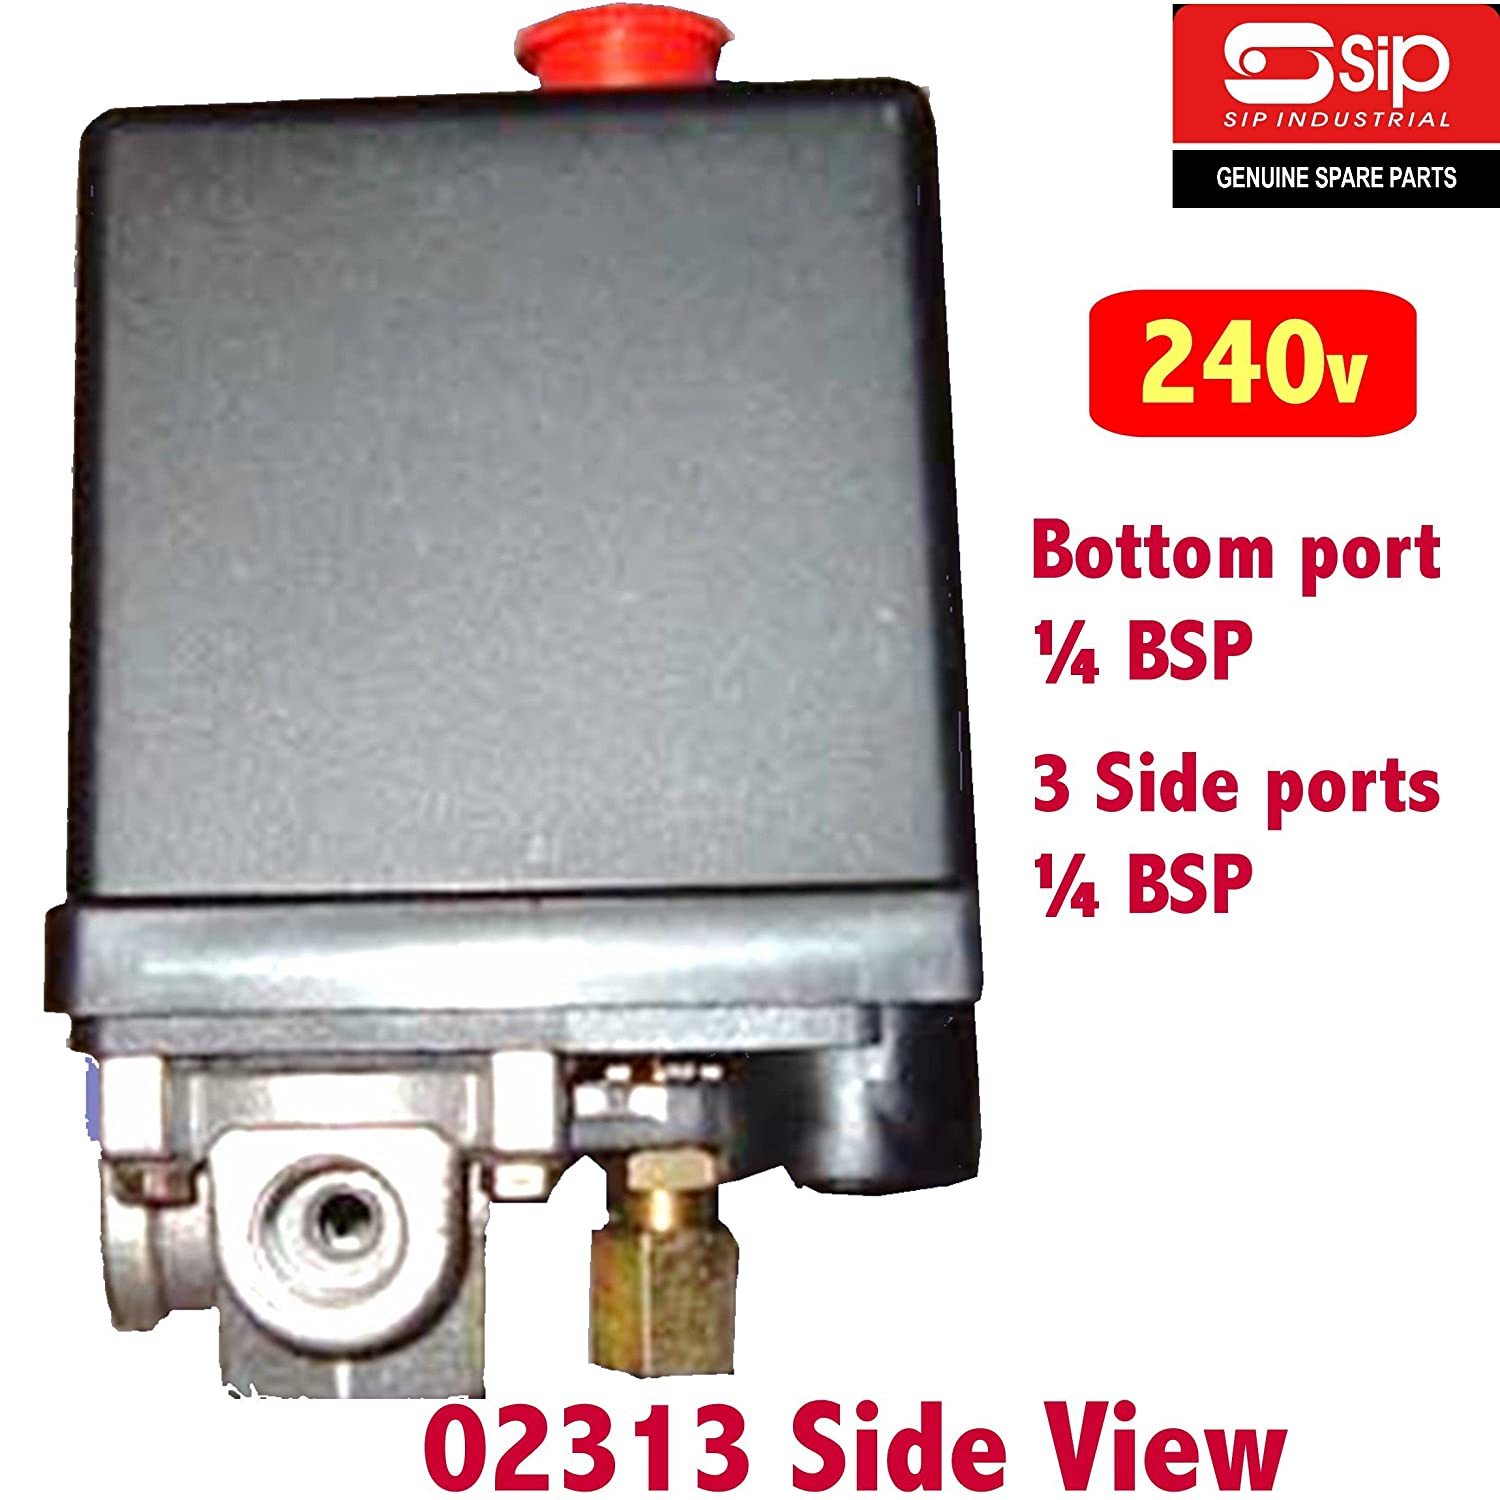 Genuine SIP 02313 air Compressor Pressure Switch Control Valve 240v with 4 x 1//4BSP Ports **Beware of Cheap Copies****!